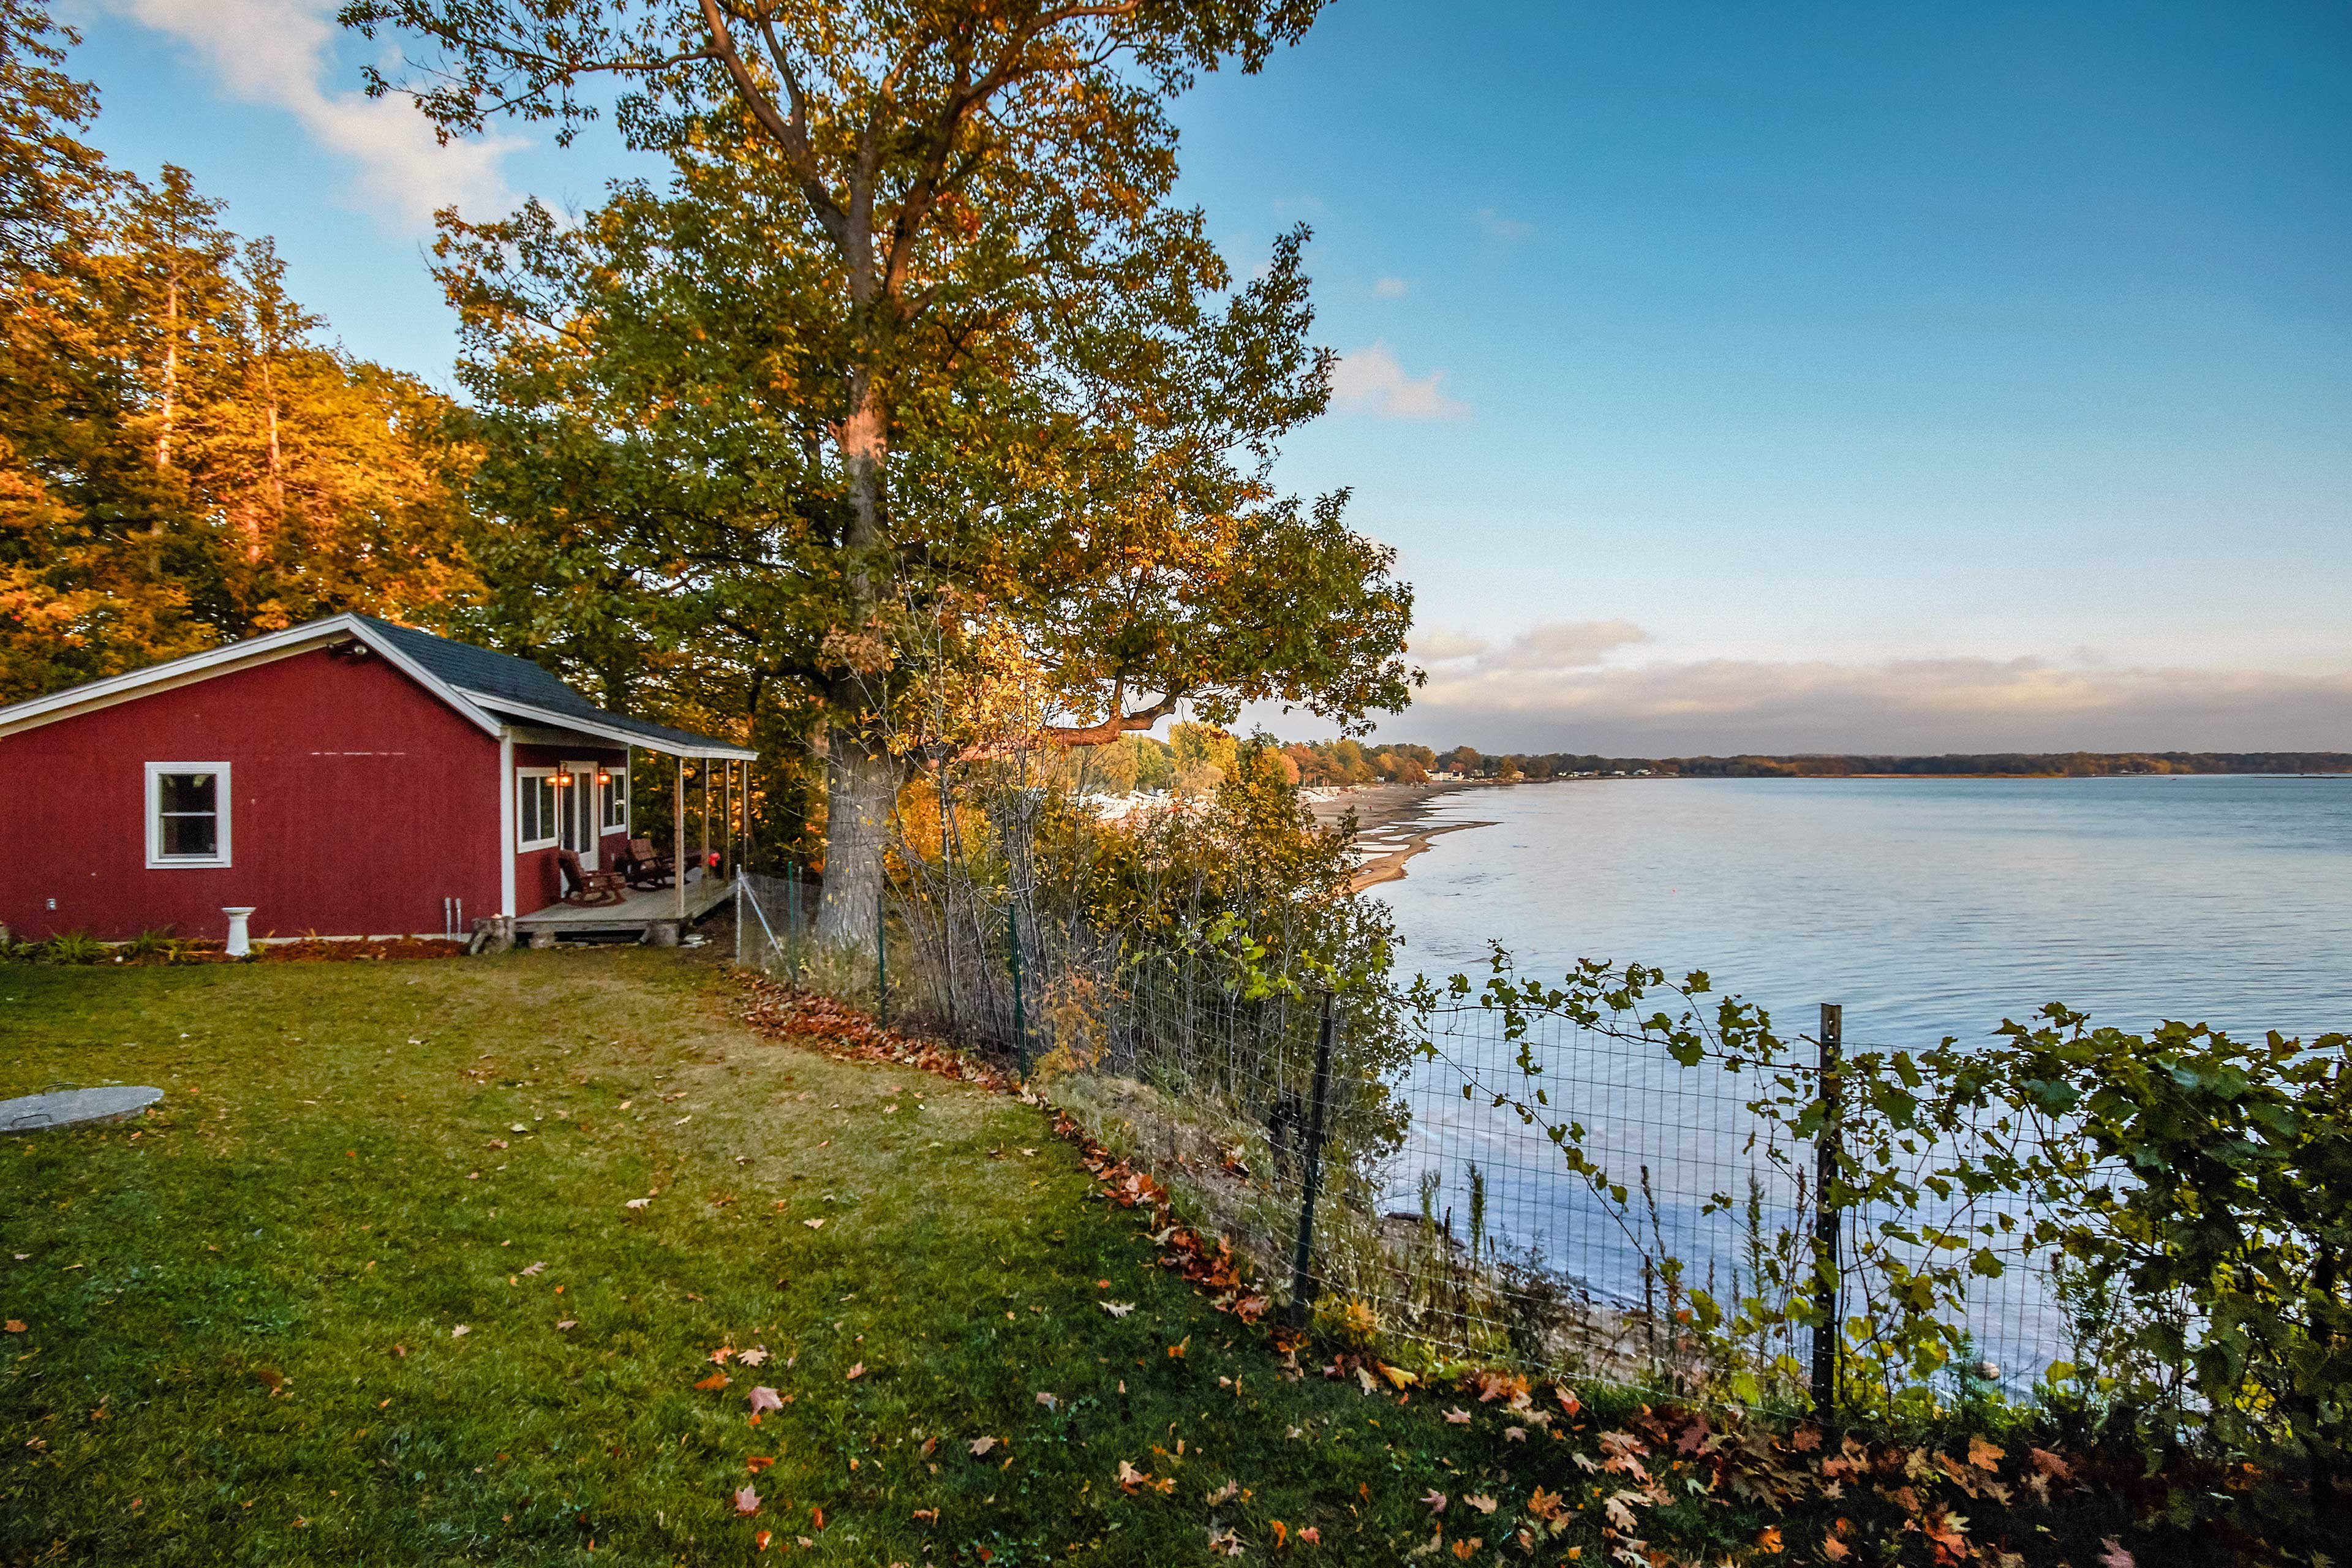 The bunkhouse has its own porch and lake views!